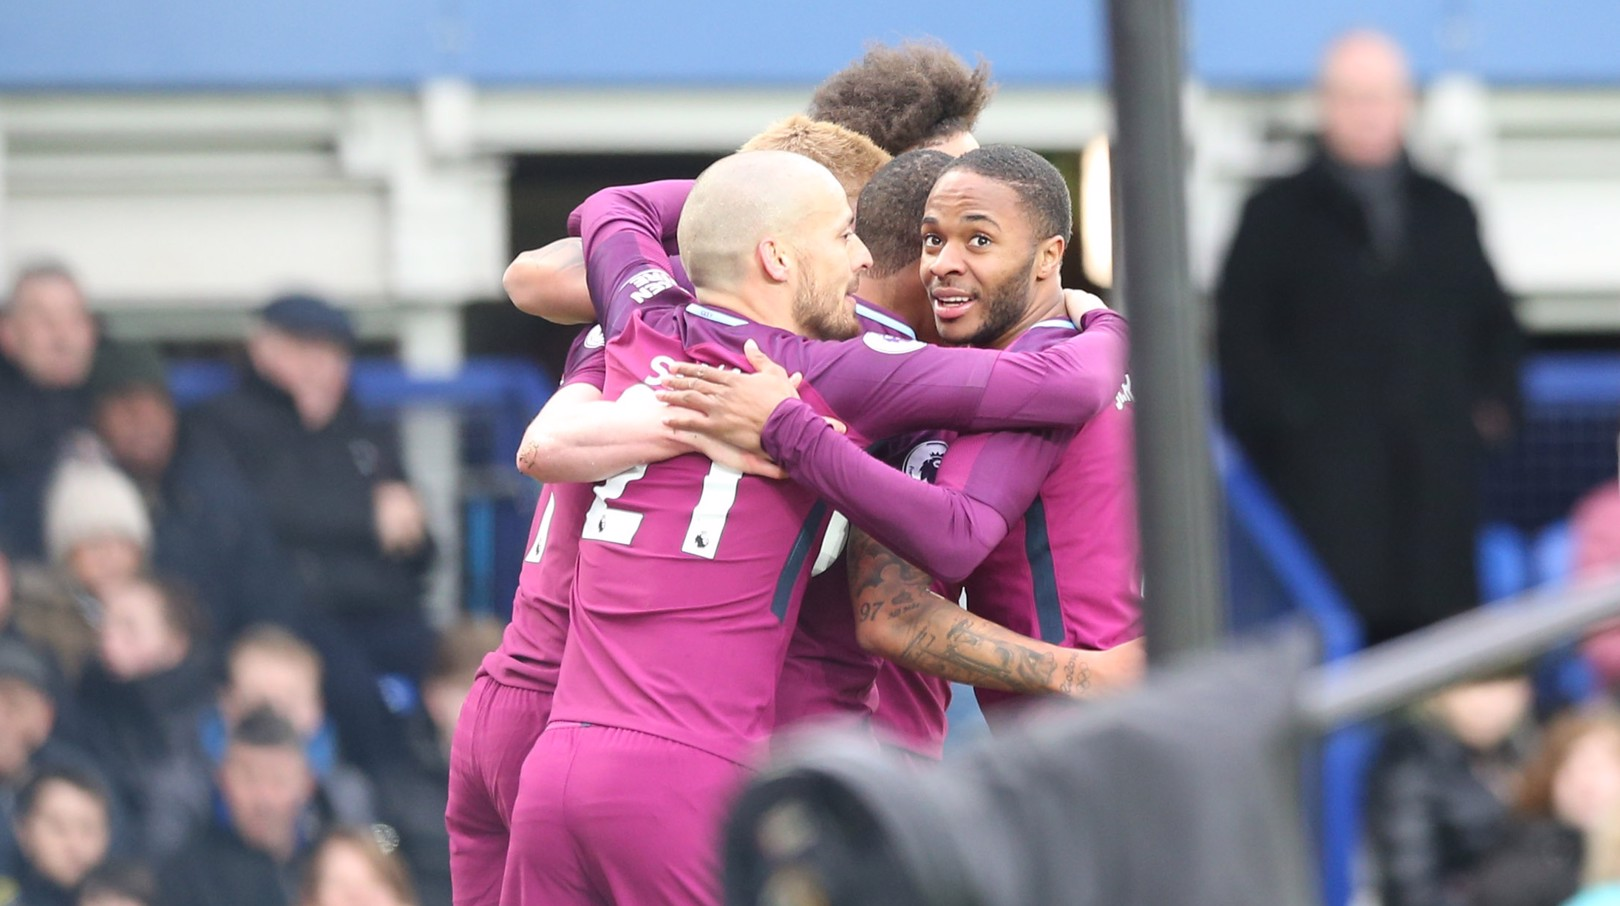 RAMPANT: City have won 13 matches away from home in the league this season